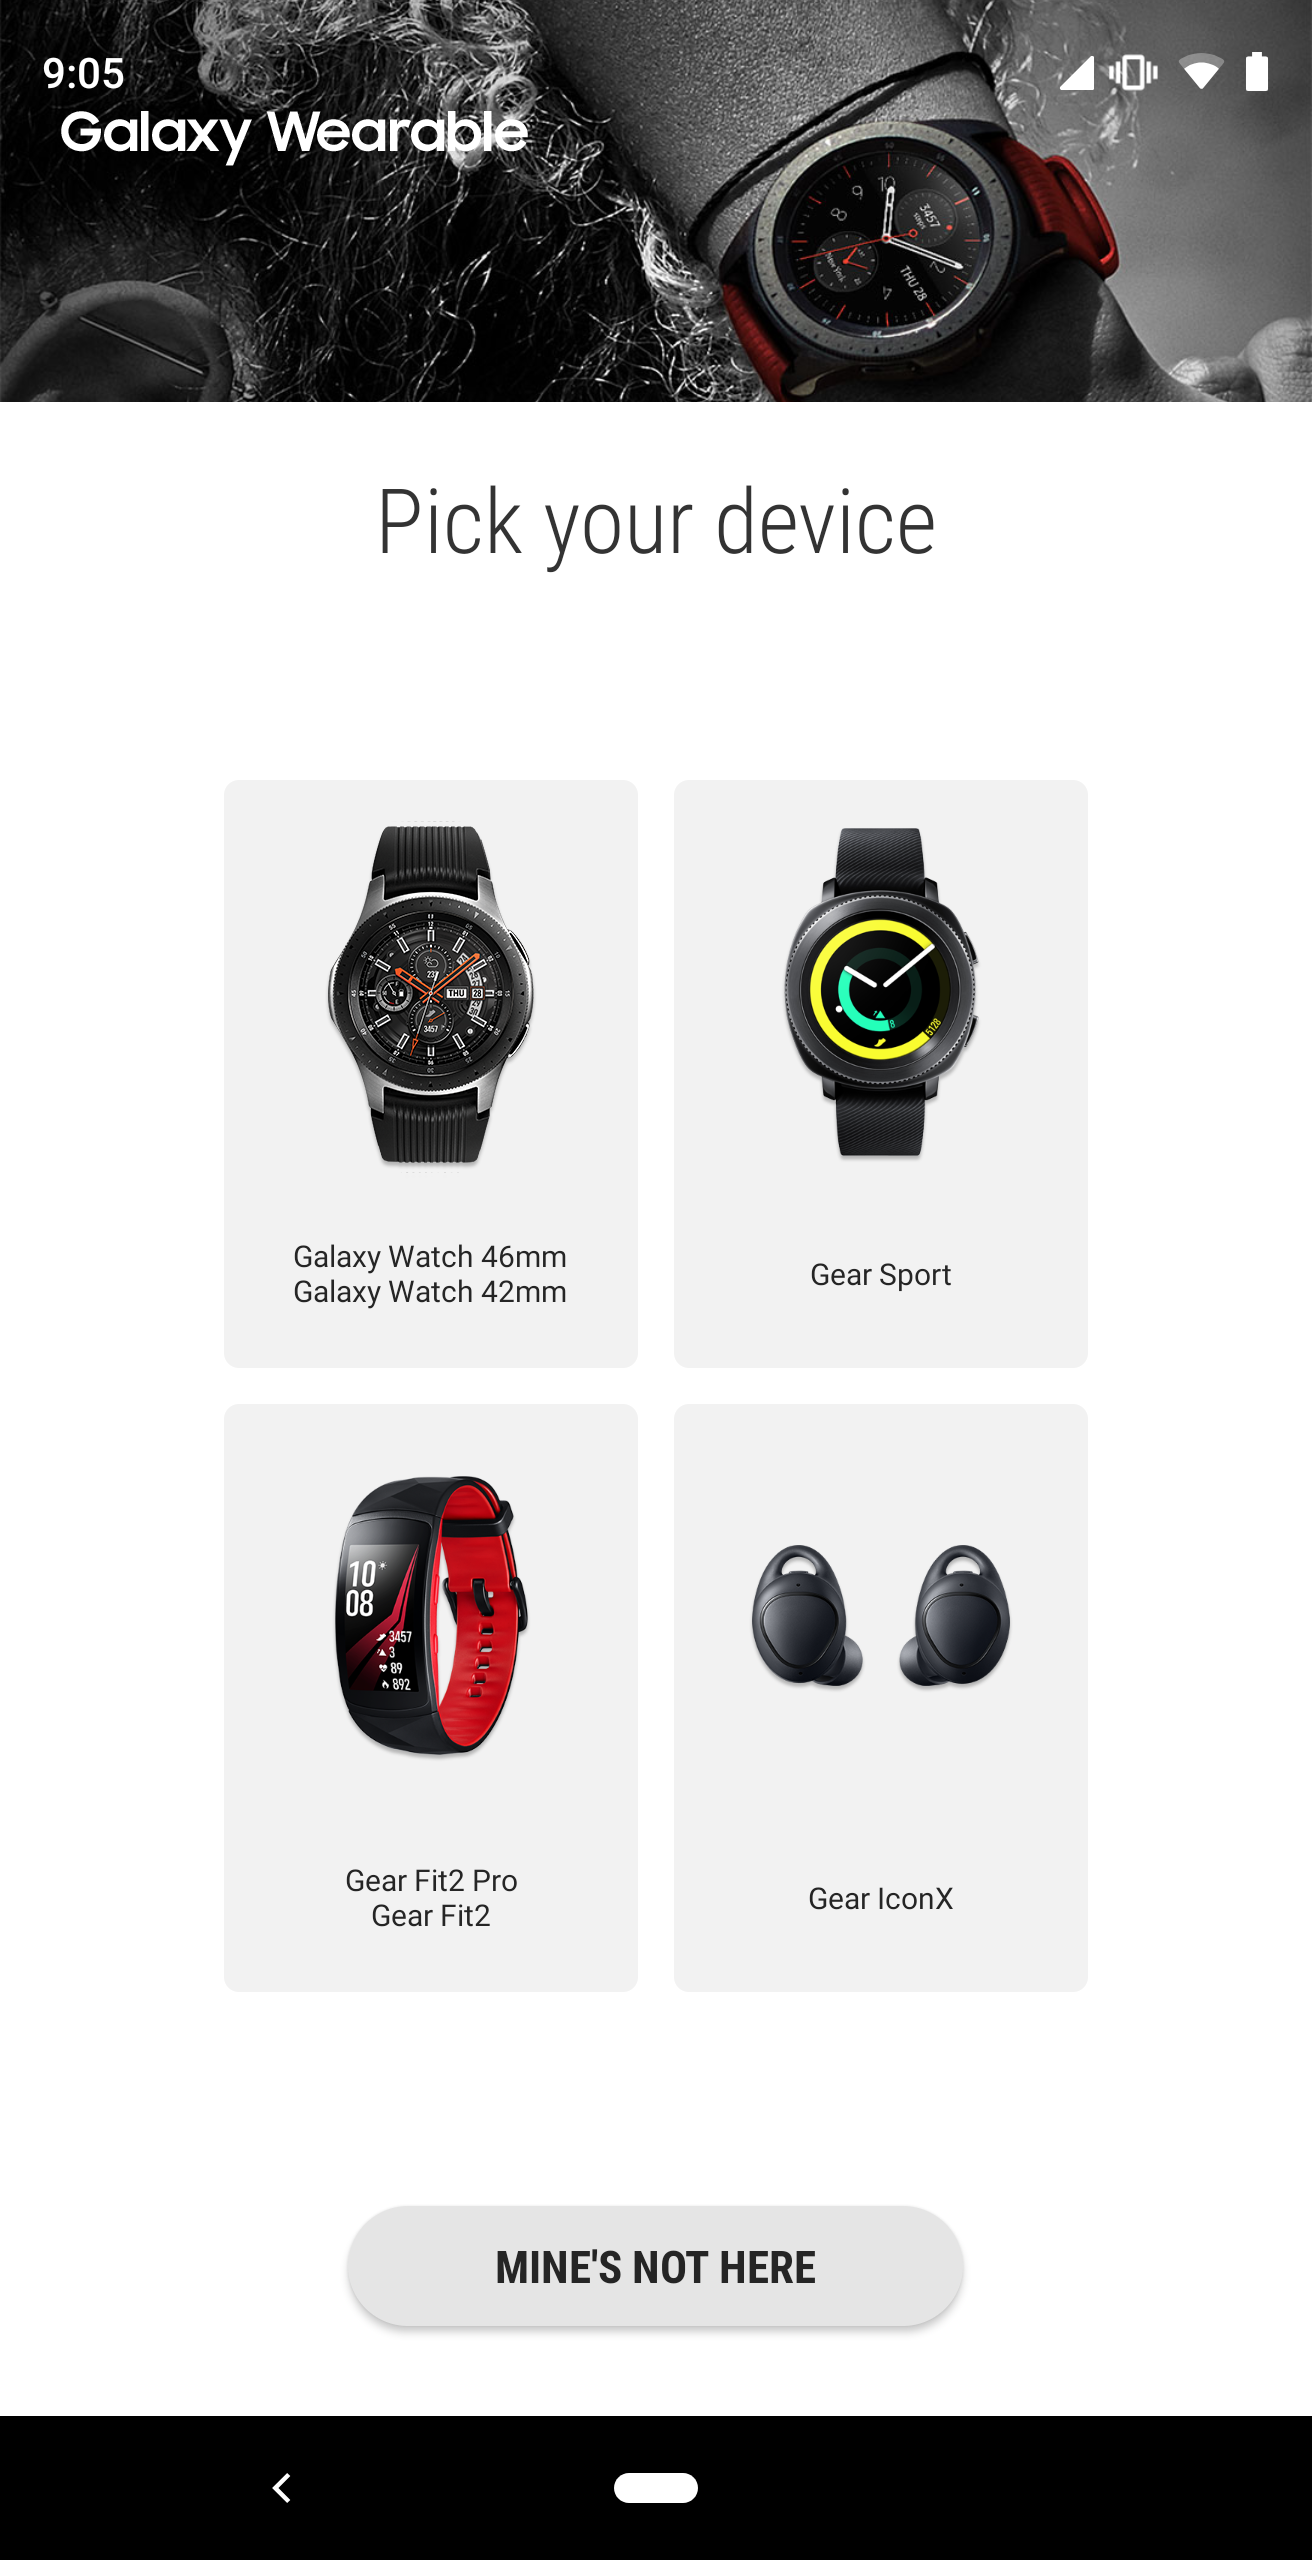 Samsung 'Galaxy Wearable' app updated w/ Android Pie & Galaxy Watch